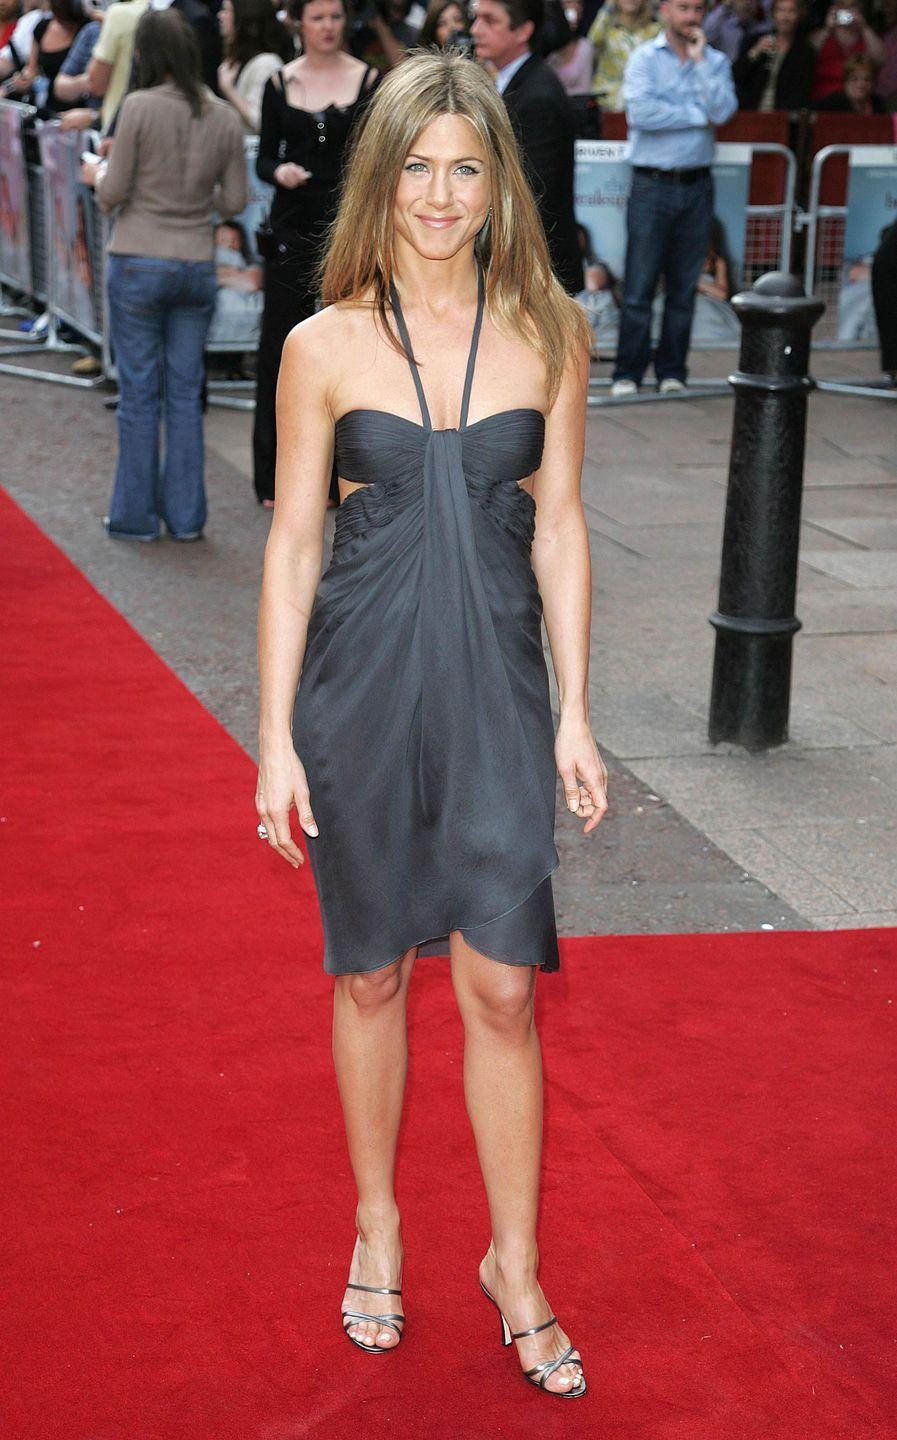 """<p>Jen rocked this halter top to the 2006 premiere of <em>The Break-Up</em>. Vince Vaughn and Jen star as a couple who lives together despite breaking up. It's possible Jen drew on her real-life experiences, but no one has looked better post-breakup. I mean, <a href=""""https://www.womenshealthmag.com/uk/fitness/a702389/how-to-look-as-hot-as-jennifer-aniston-hollywood-reporter/"""" rel=""""nofollow noopener"""" target=""""_blank"""" data-ylk=""""slk:look at those legs"""" class=""""link rapid-noclick-resp"""">look at those legs</a>.<br></p>"""